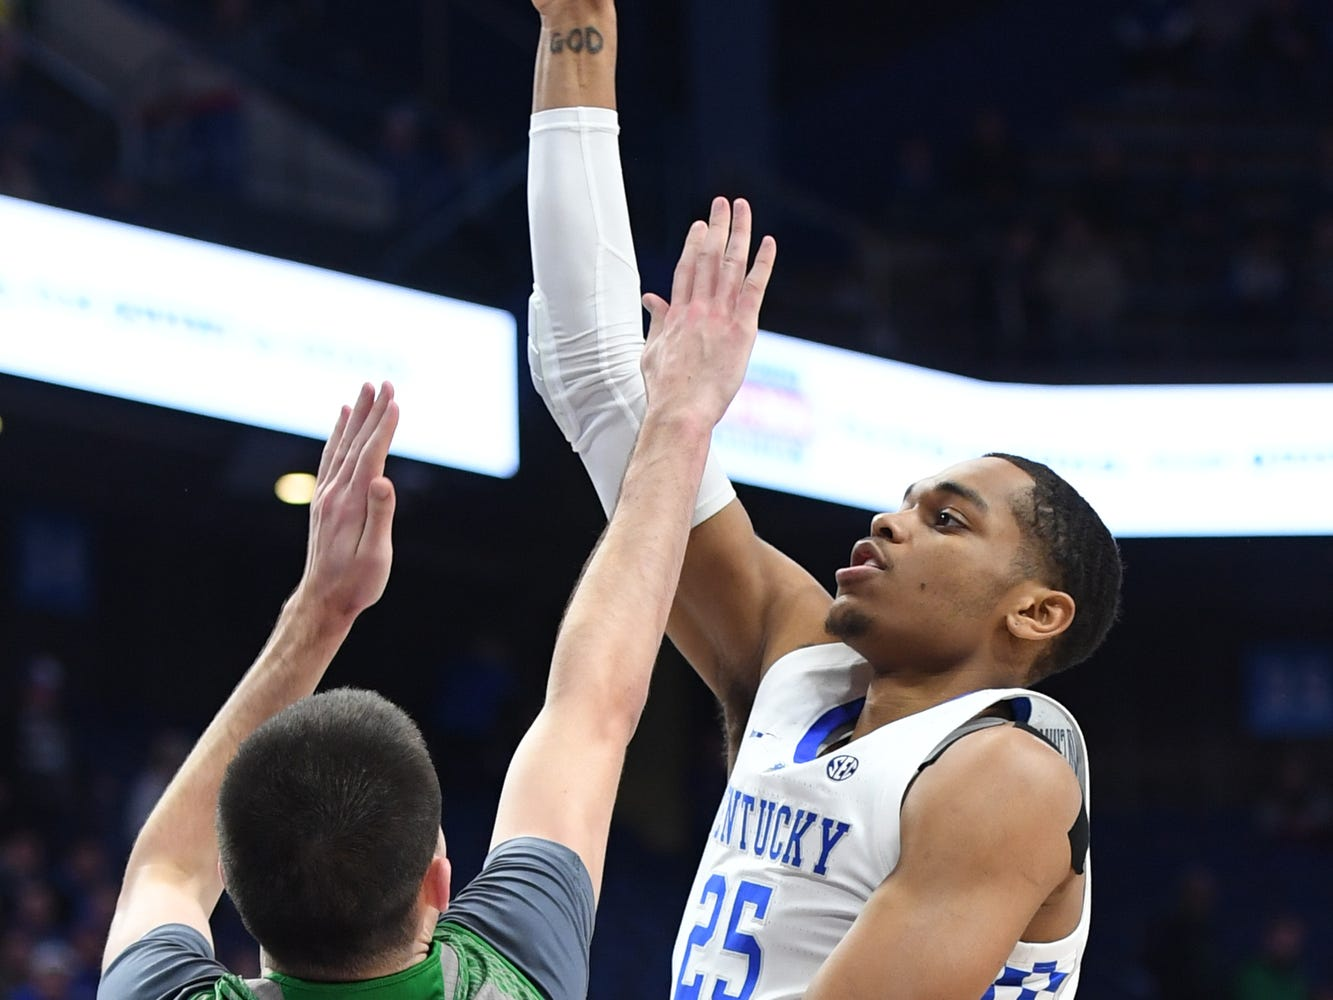 UK F PJ Washington shoots during the University of Kentucky mens basketball game against North Dakota at Rupp Arena in Lexington, Kentucky on Wednesday, November 14, 2018.